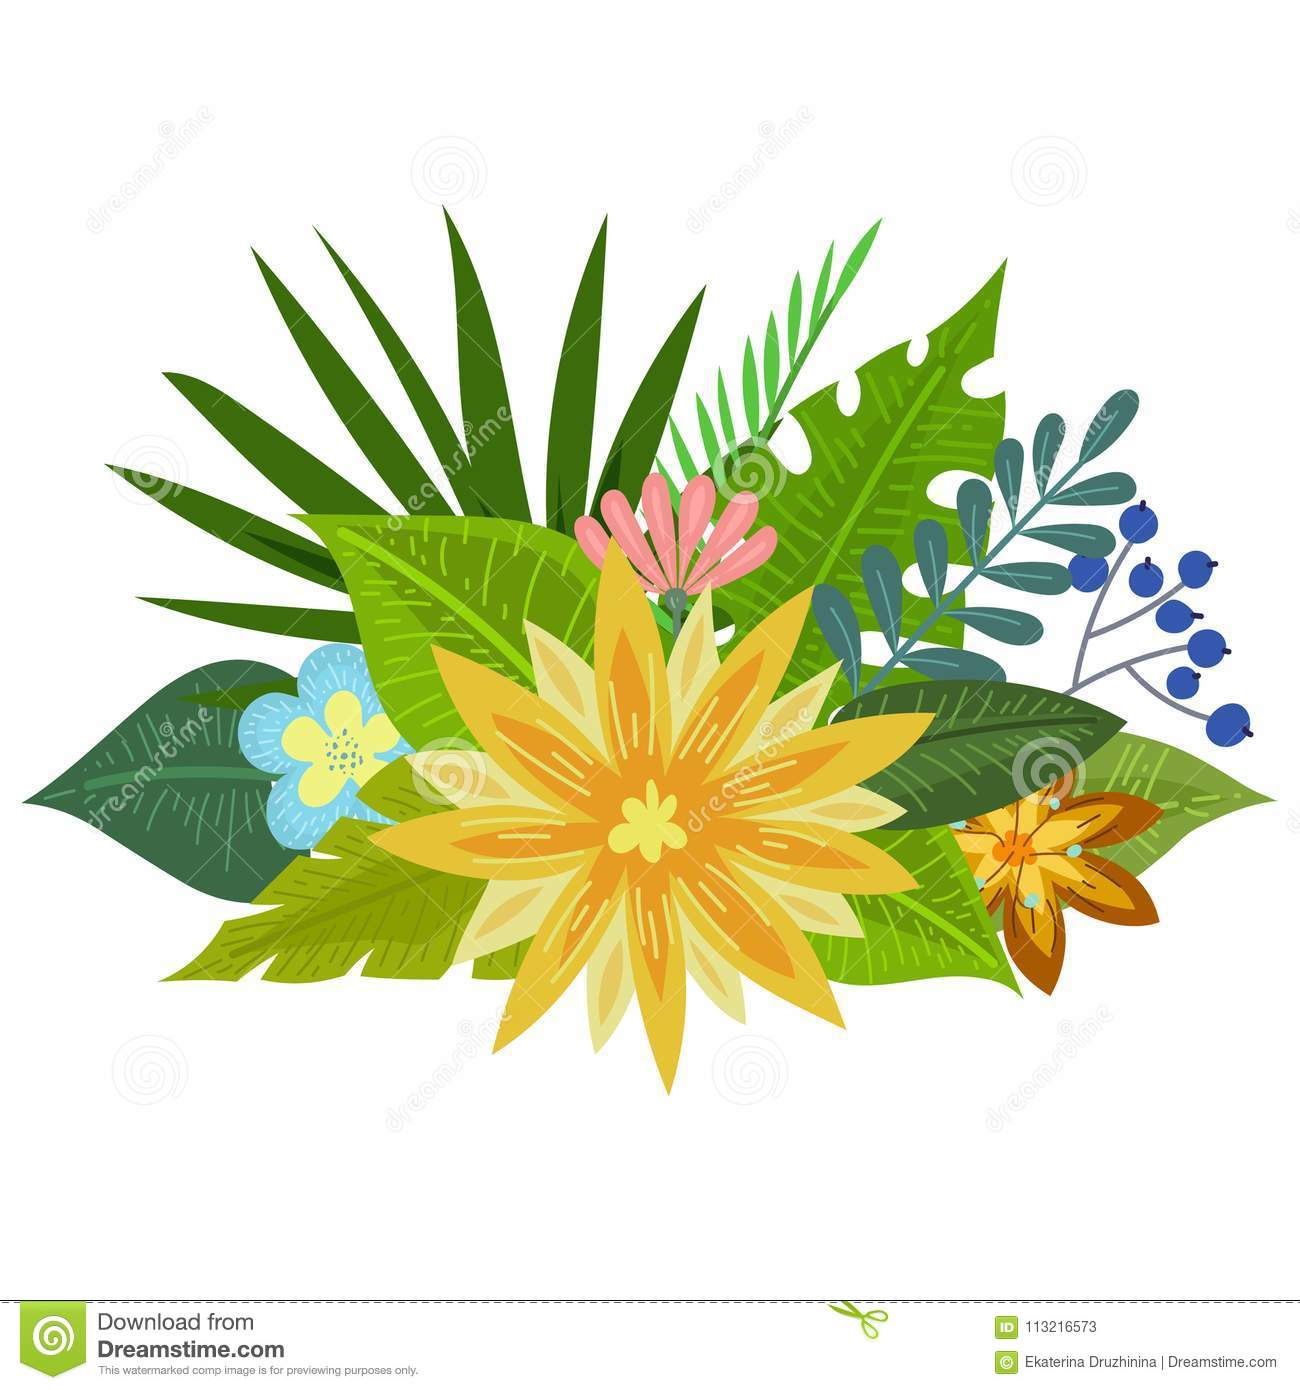 Tropical flowers bouquet stock vector. Illustration of garden ...